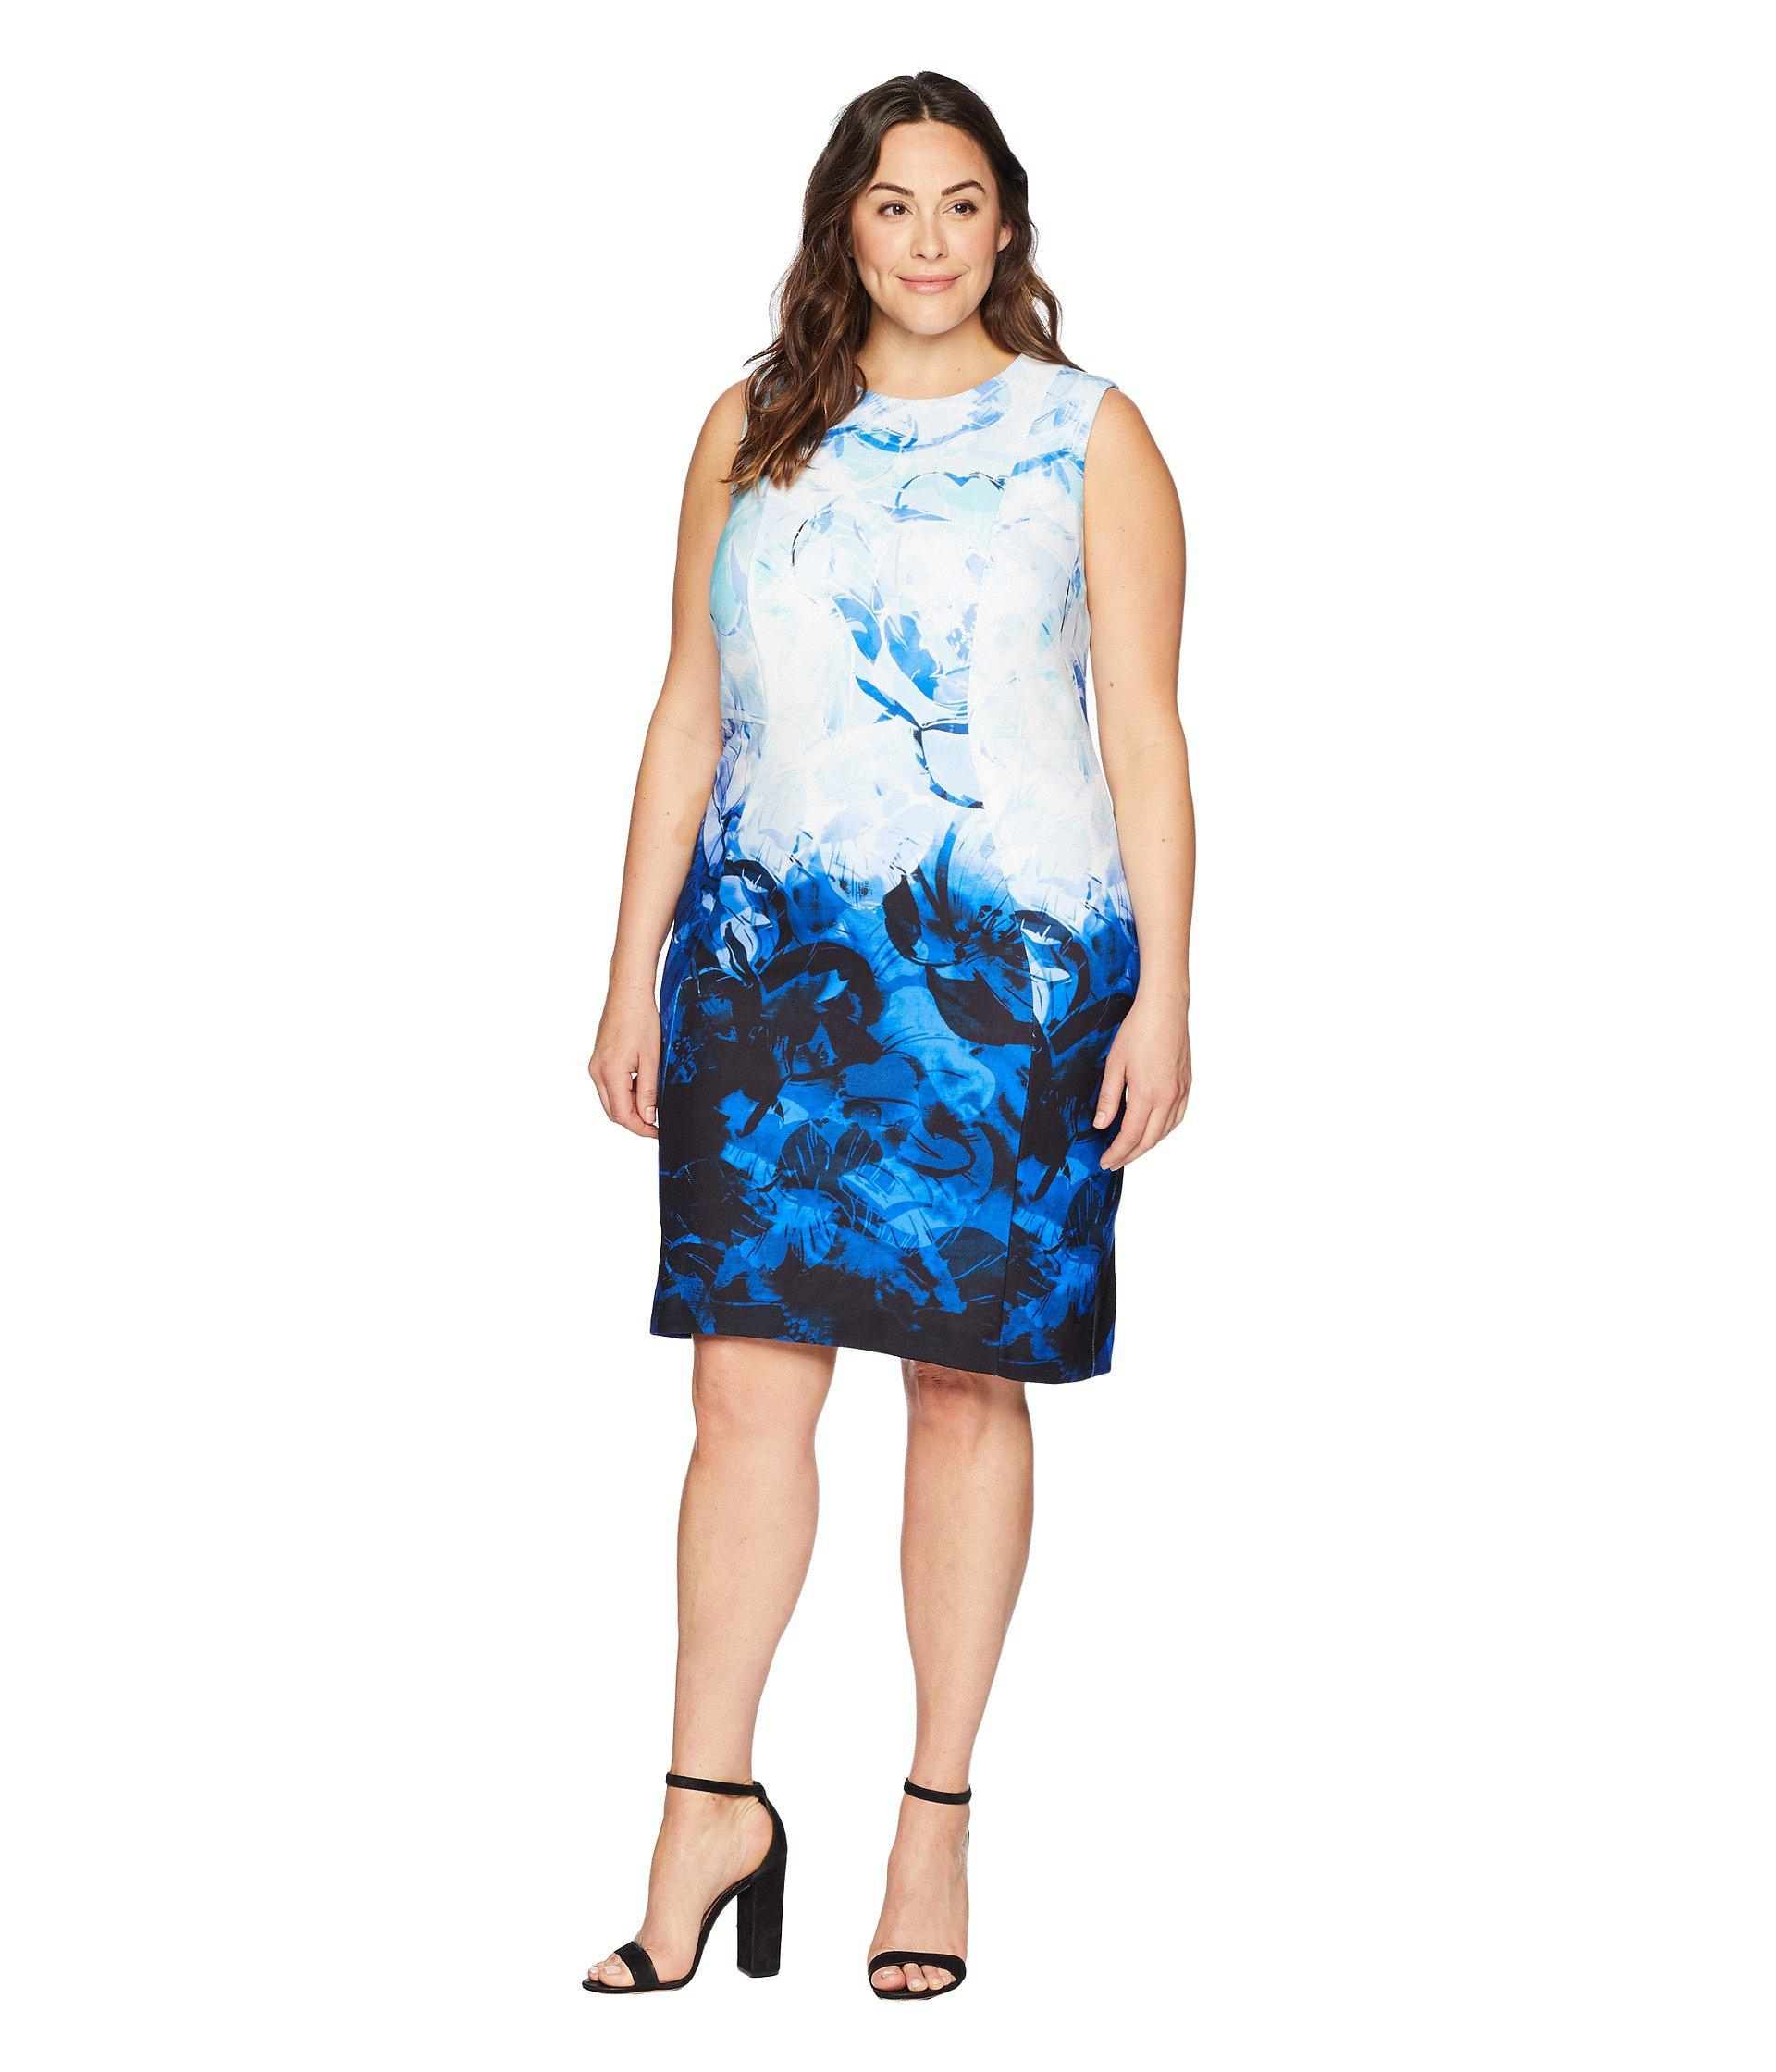 0803a31b507 Lyst - Calvin Klein Plus Size Printed Sheath Dress in Blue - Save 15%